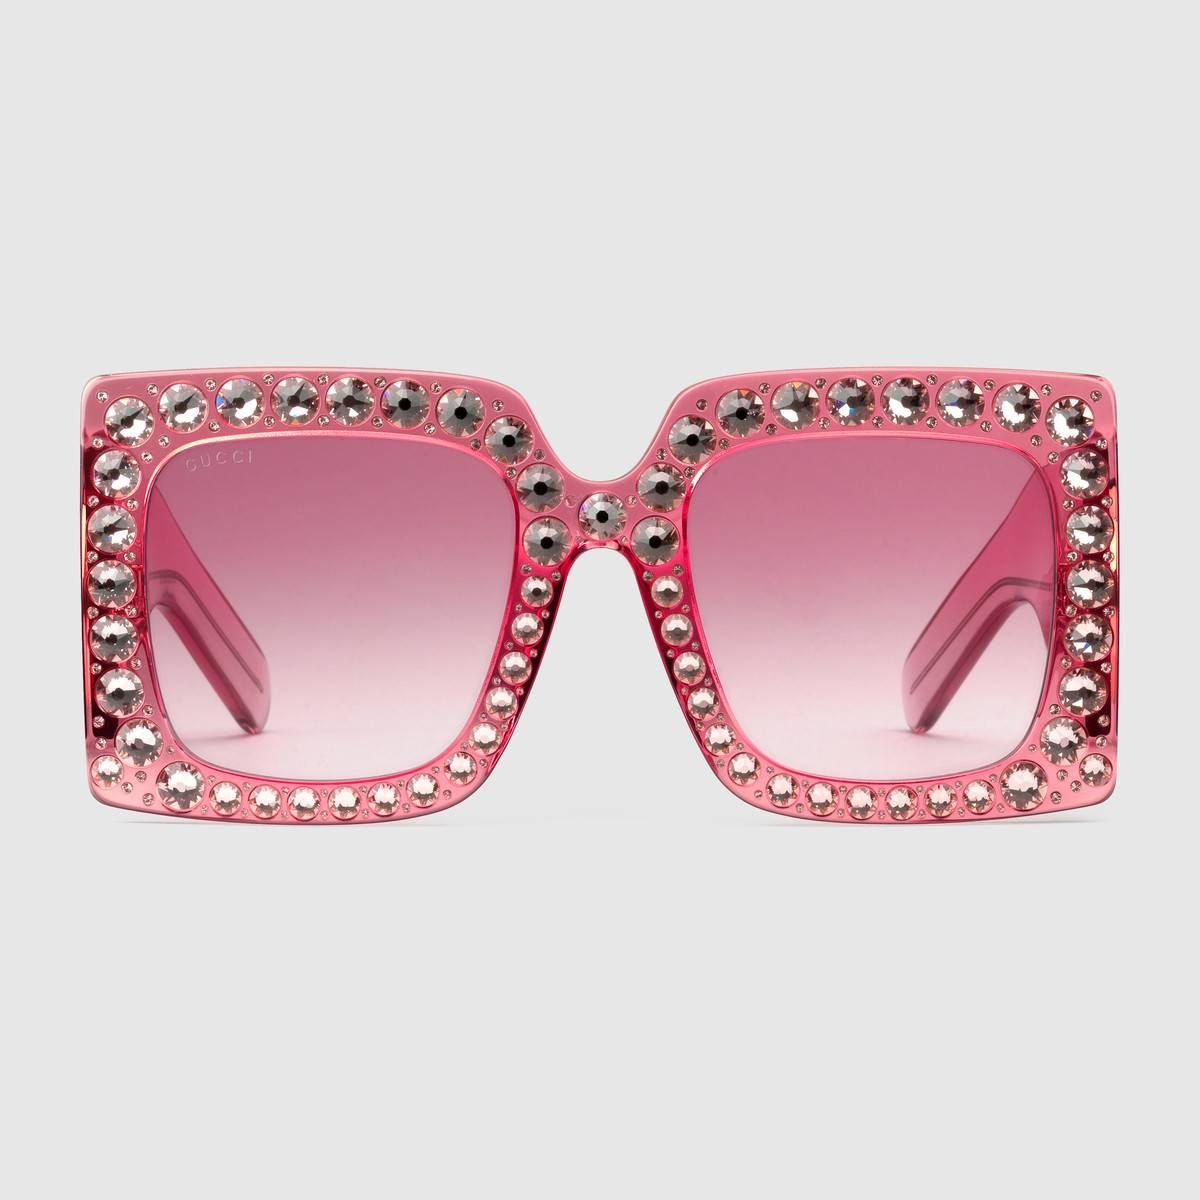 673b06db09 Oversize square-frame acetate sunglasses in Transparent pink acetate frame  with hand-applied crystals